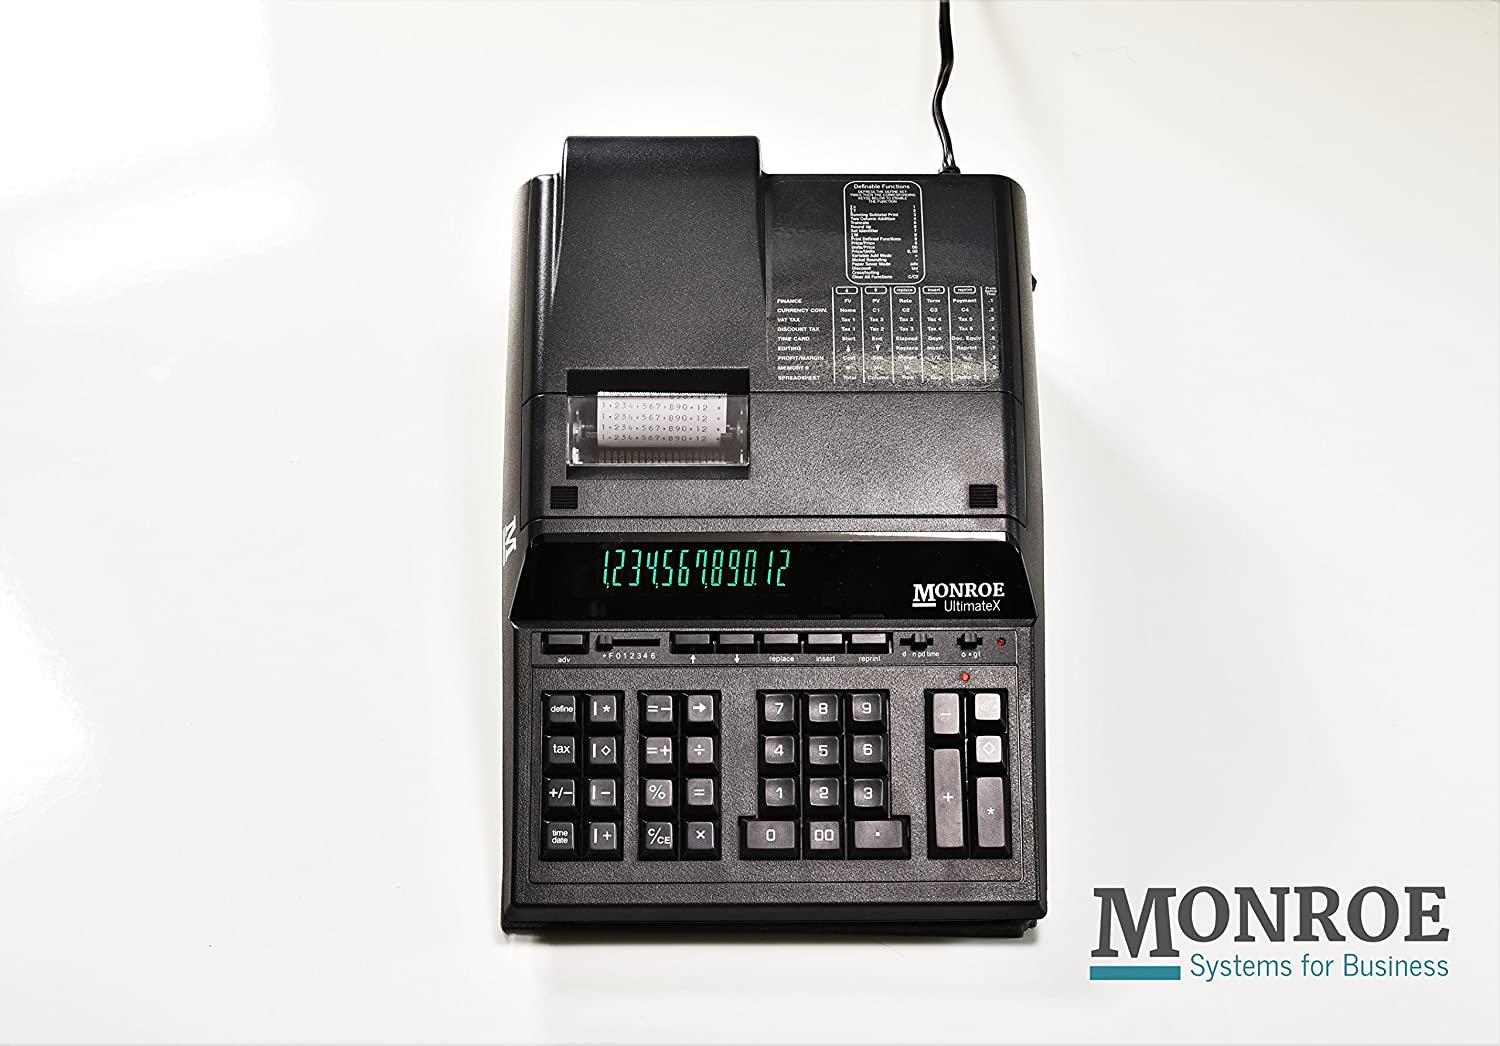 (1) Monroe 12-Digit Print/Display UltimateX, A Top-Of-The-Line Heavy-Duty Calculator With Reprint & Editing Capabilities in Black Monroe Systems for Business LYSB01ITOP1DO-ELECTRNCS